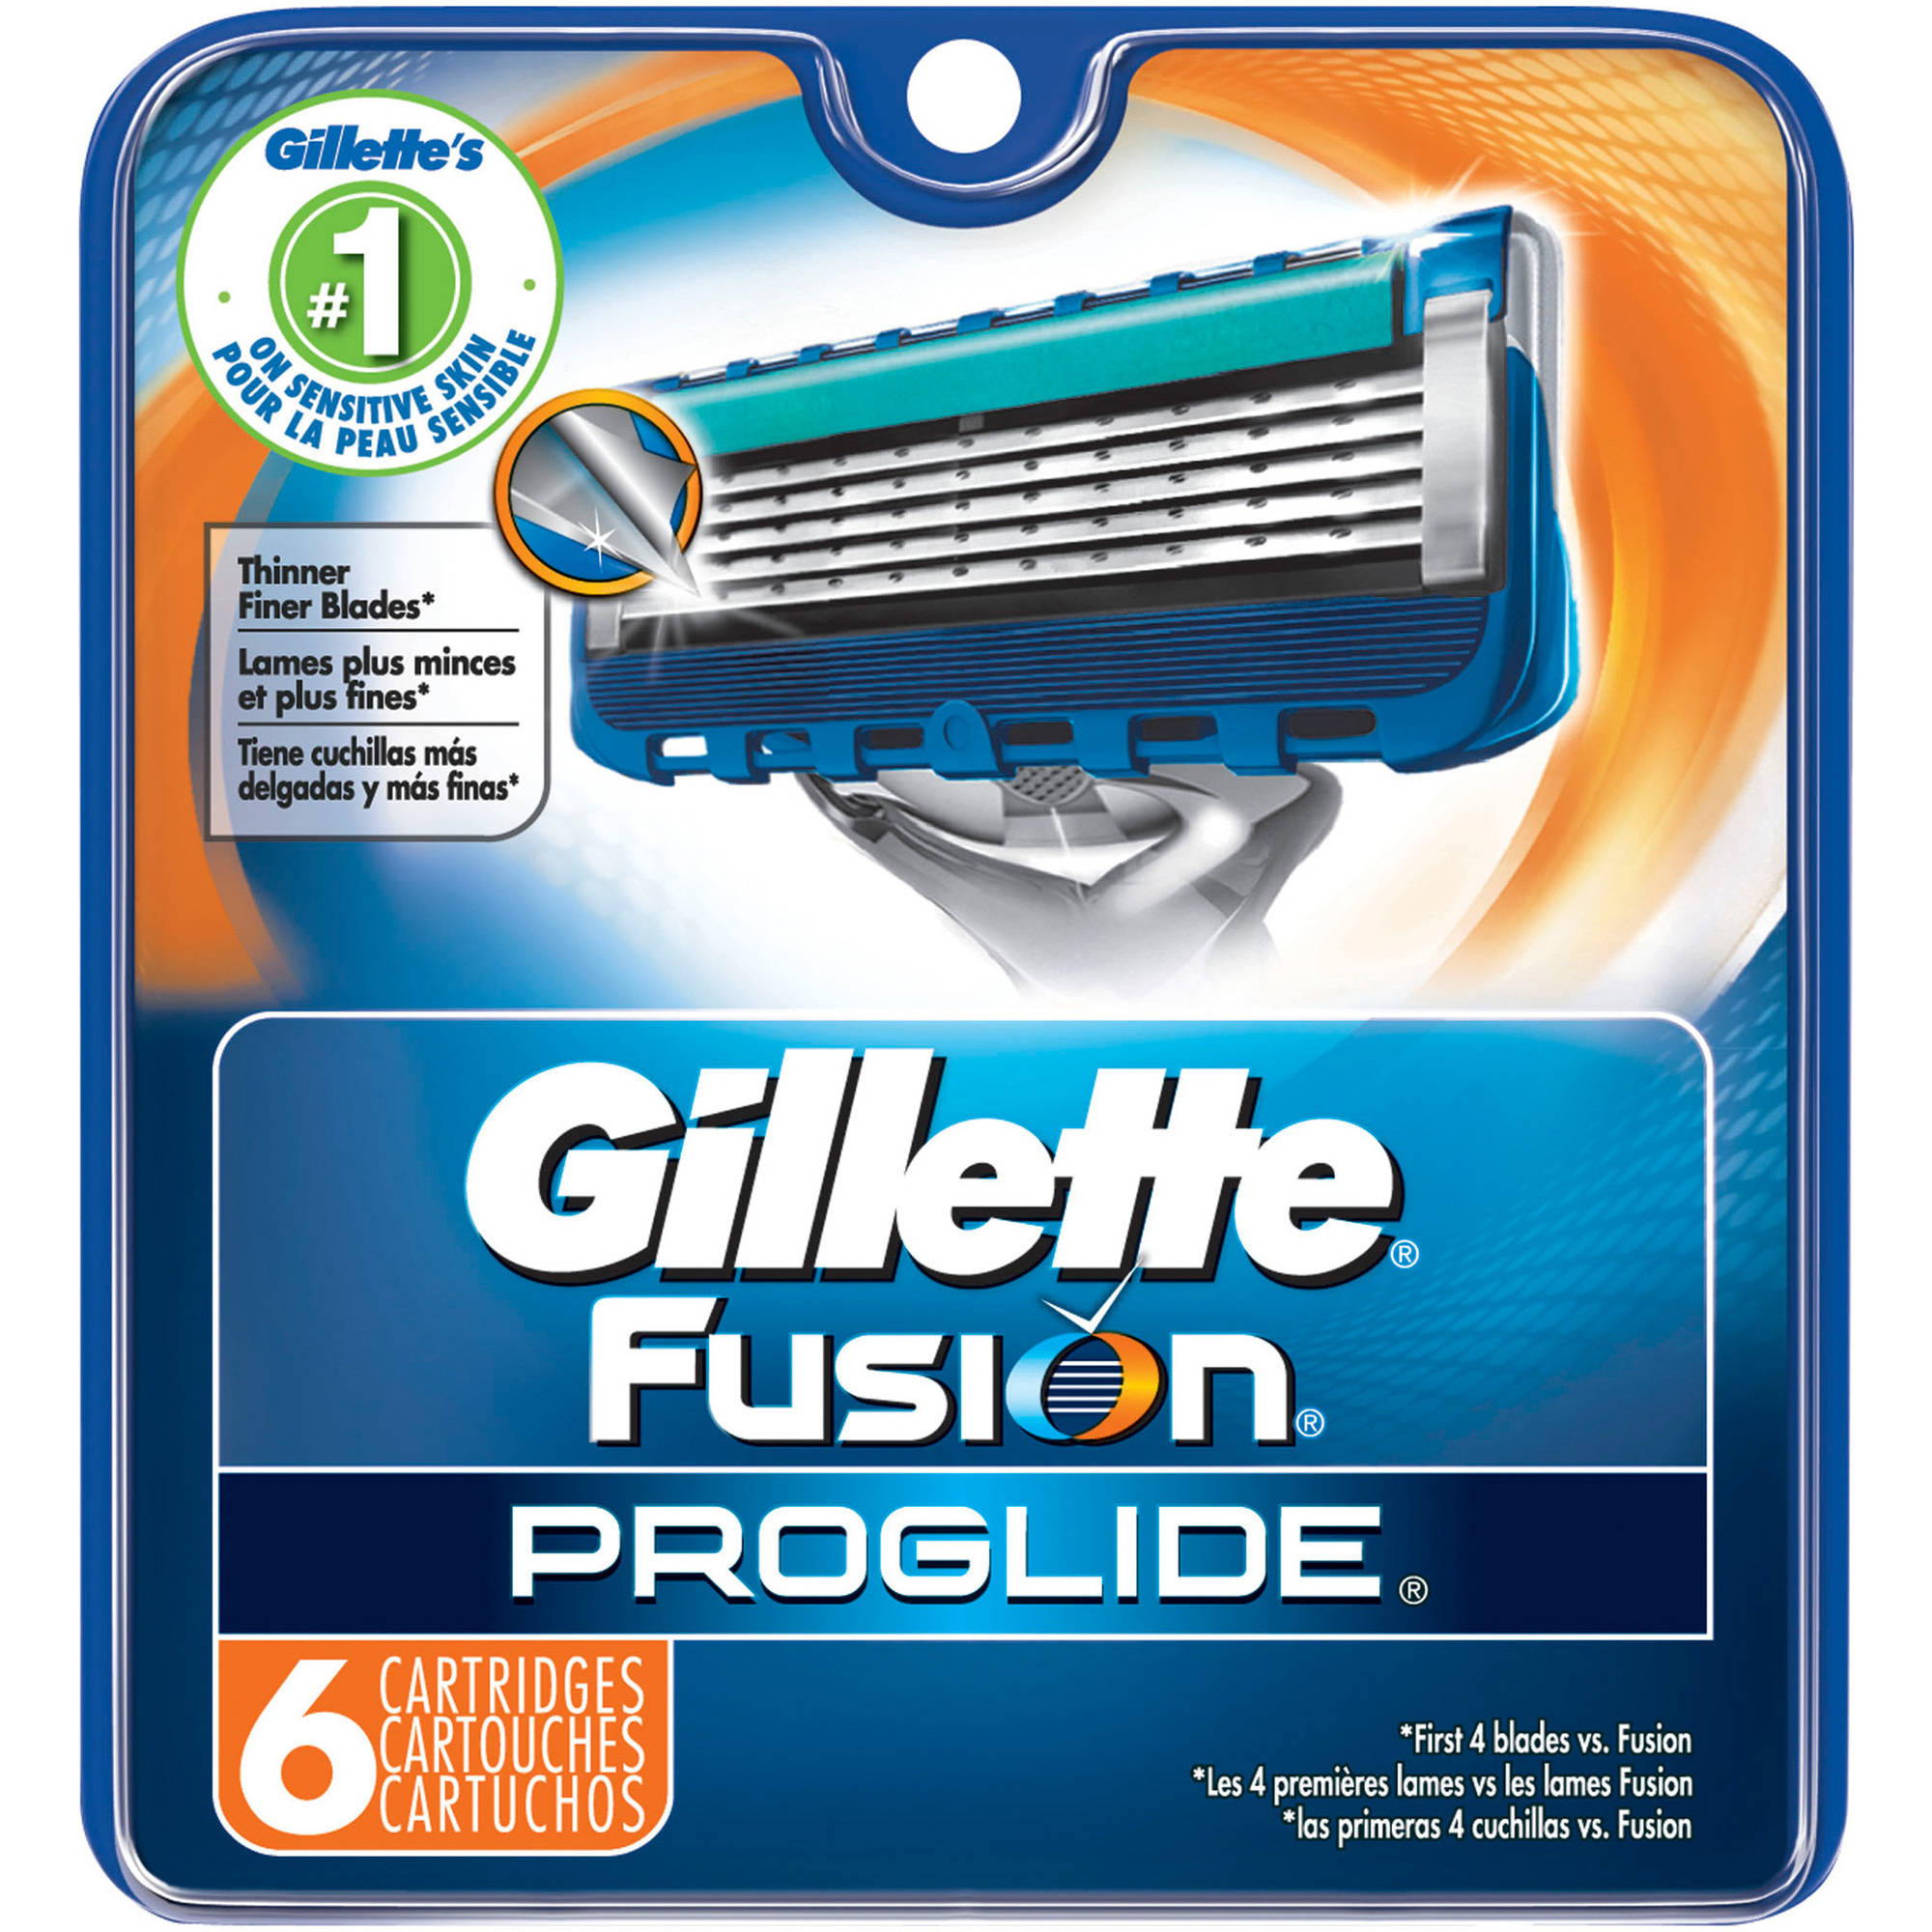 Gillette Fusion ProGlide Razor Cartridge Refills, 6 count